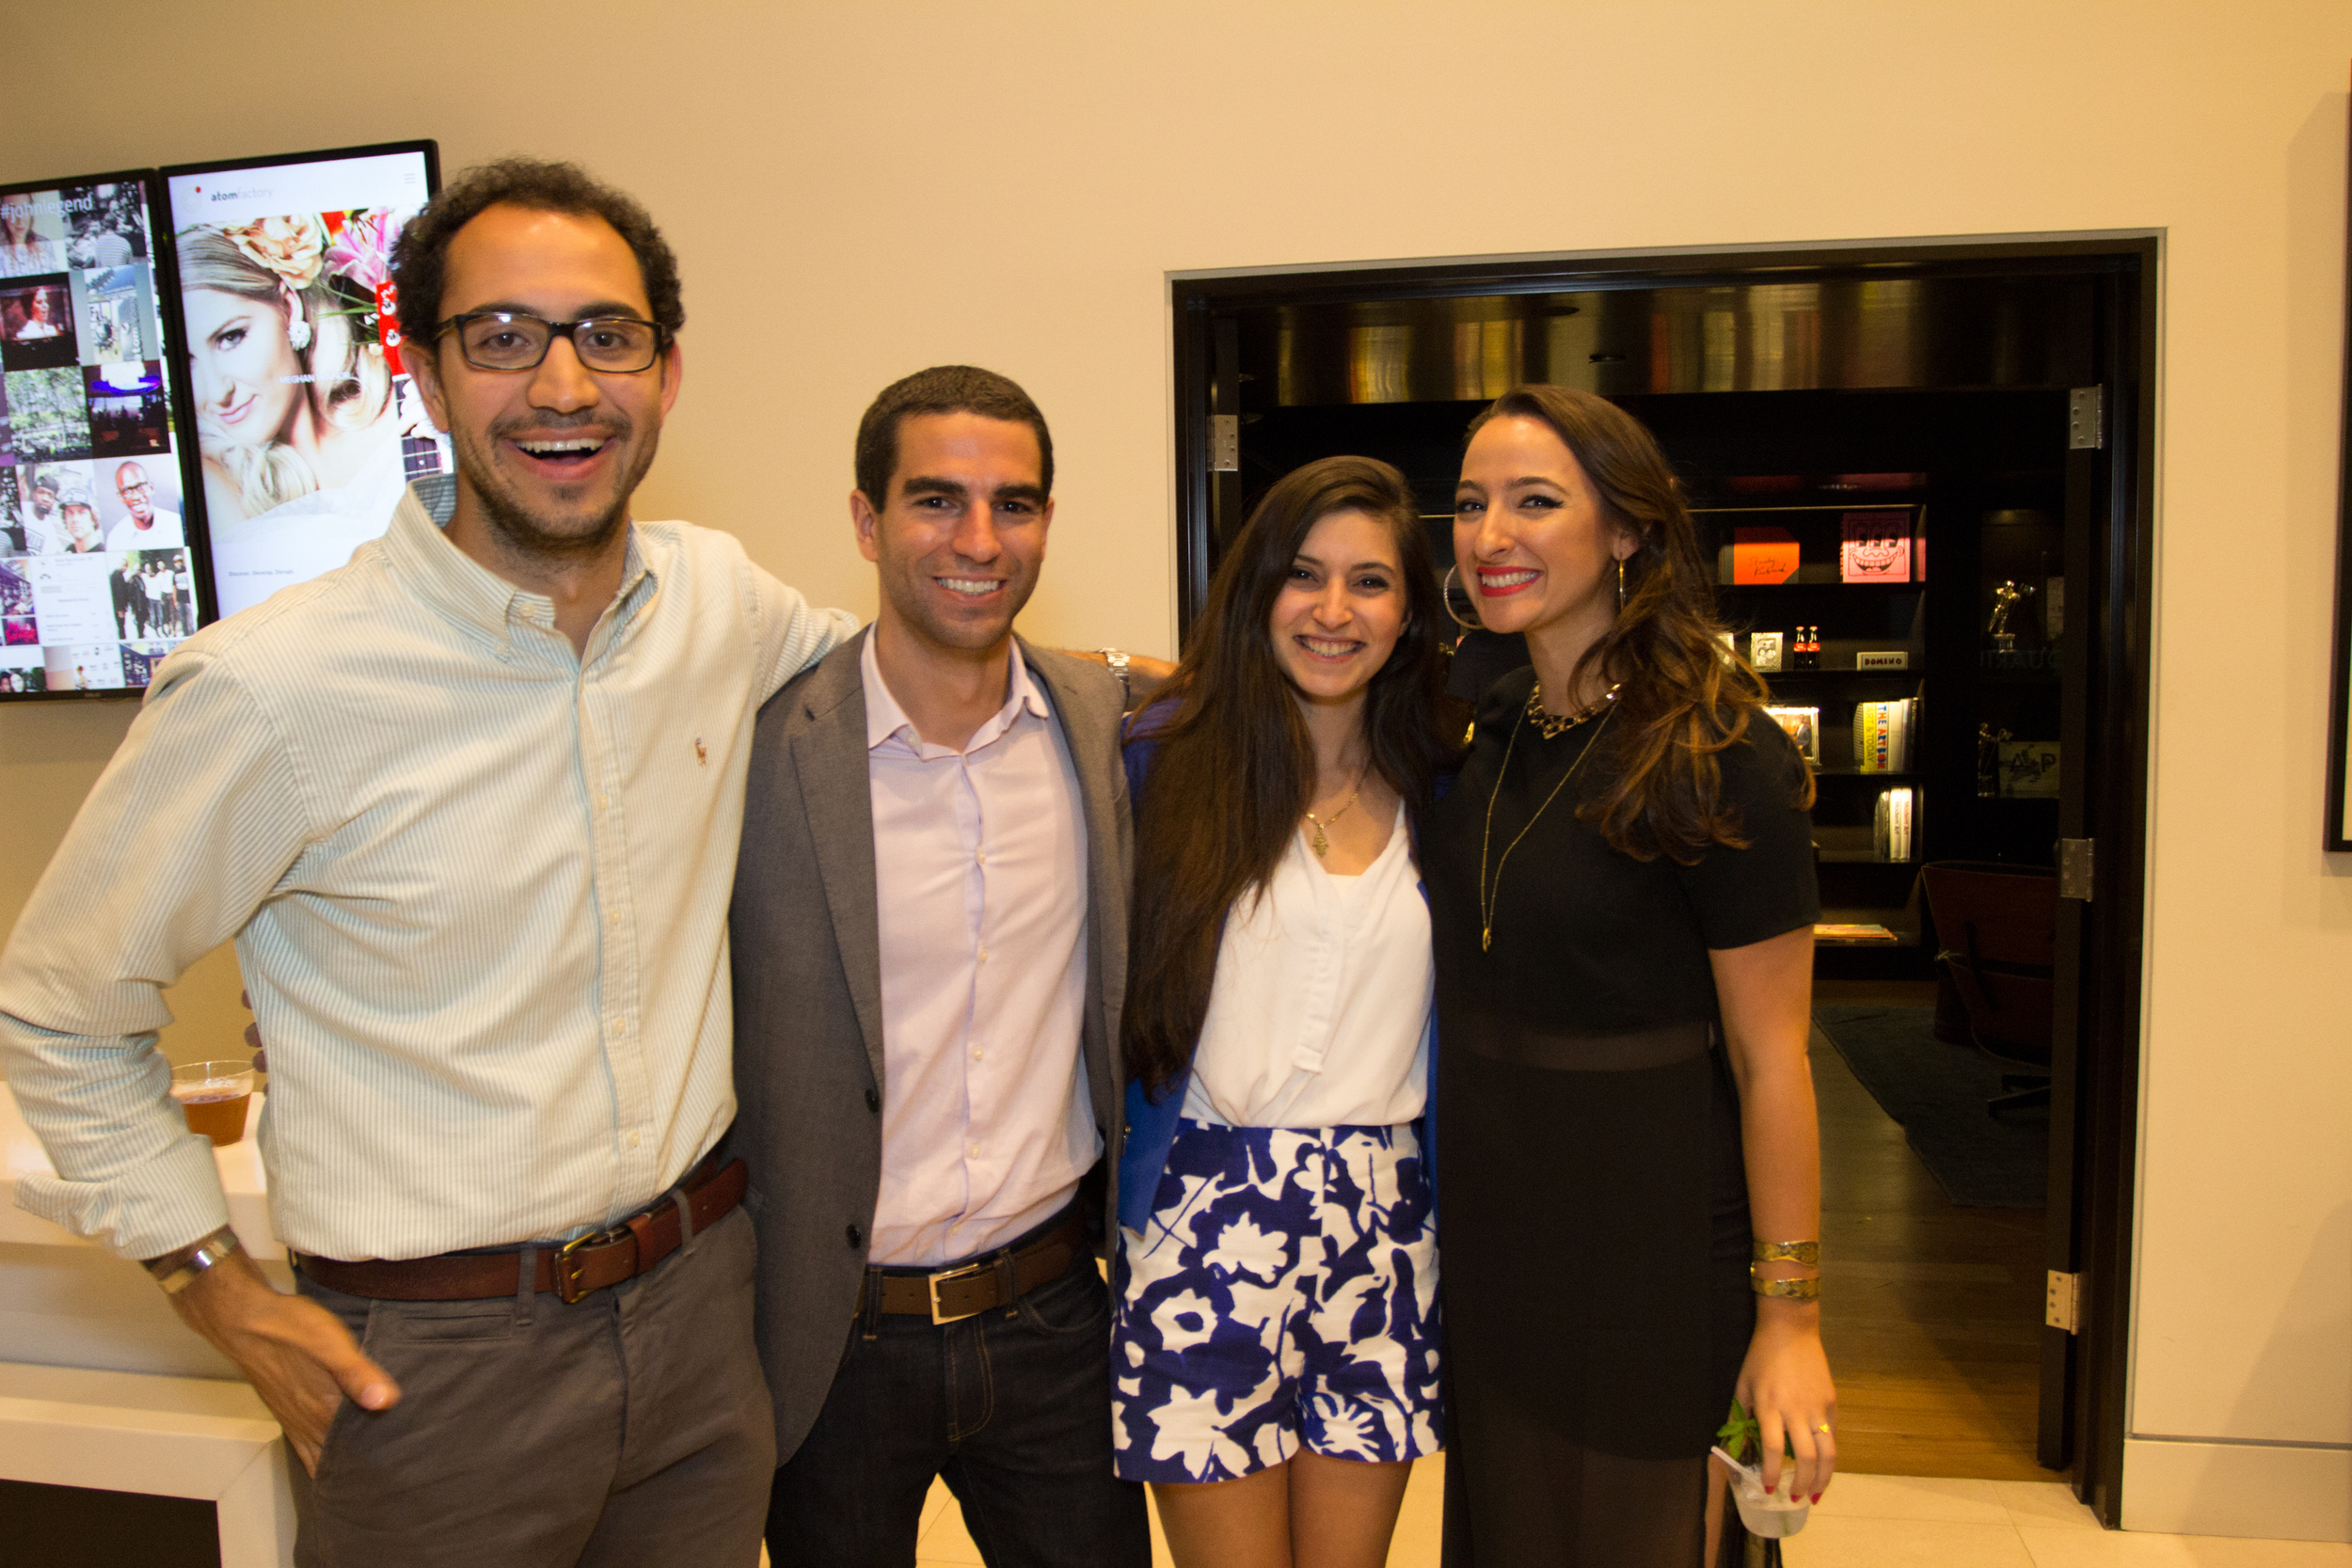 Arteen Arabshashi of Karlin Venture, Mike Fernandez of Velos Partners, Liora Simozar, Aliza Kelly Faragher of Align